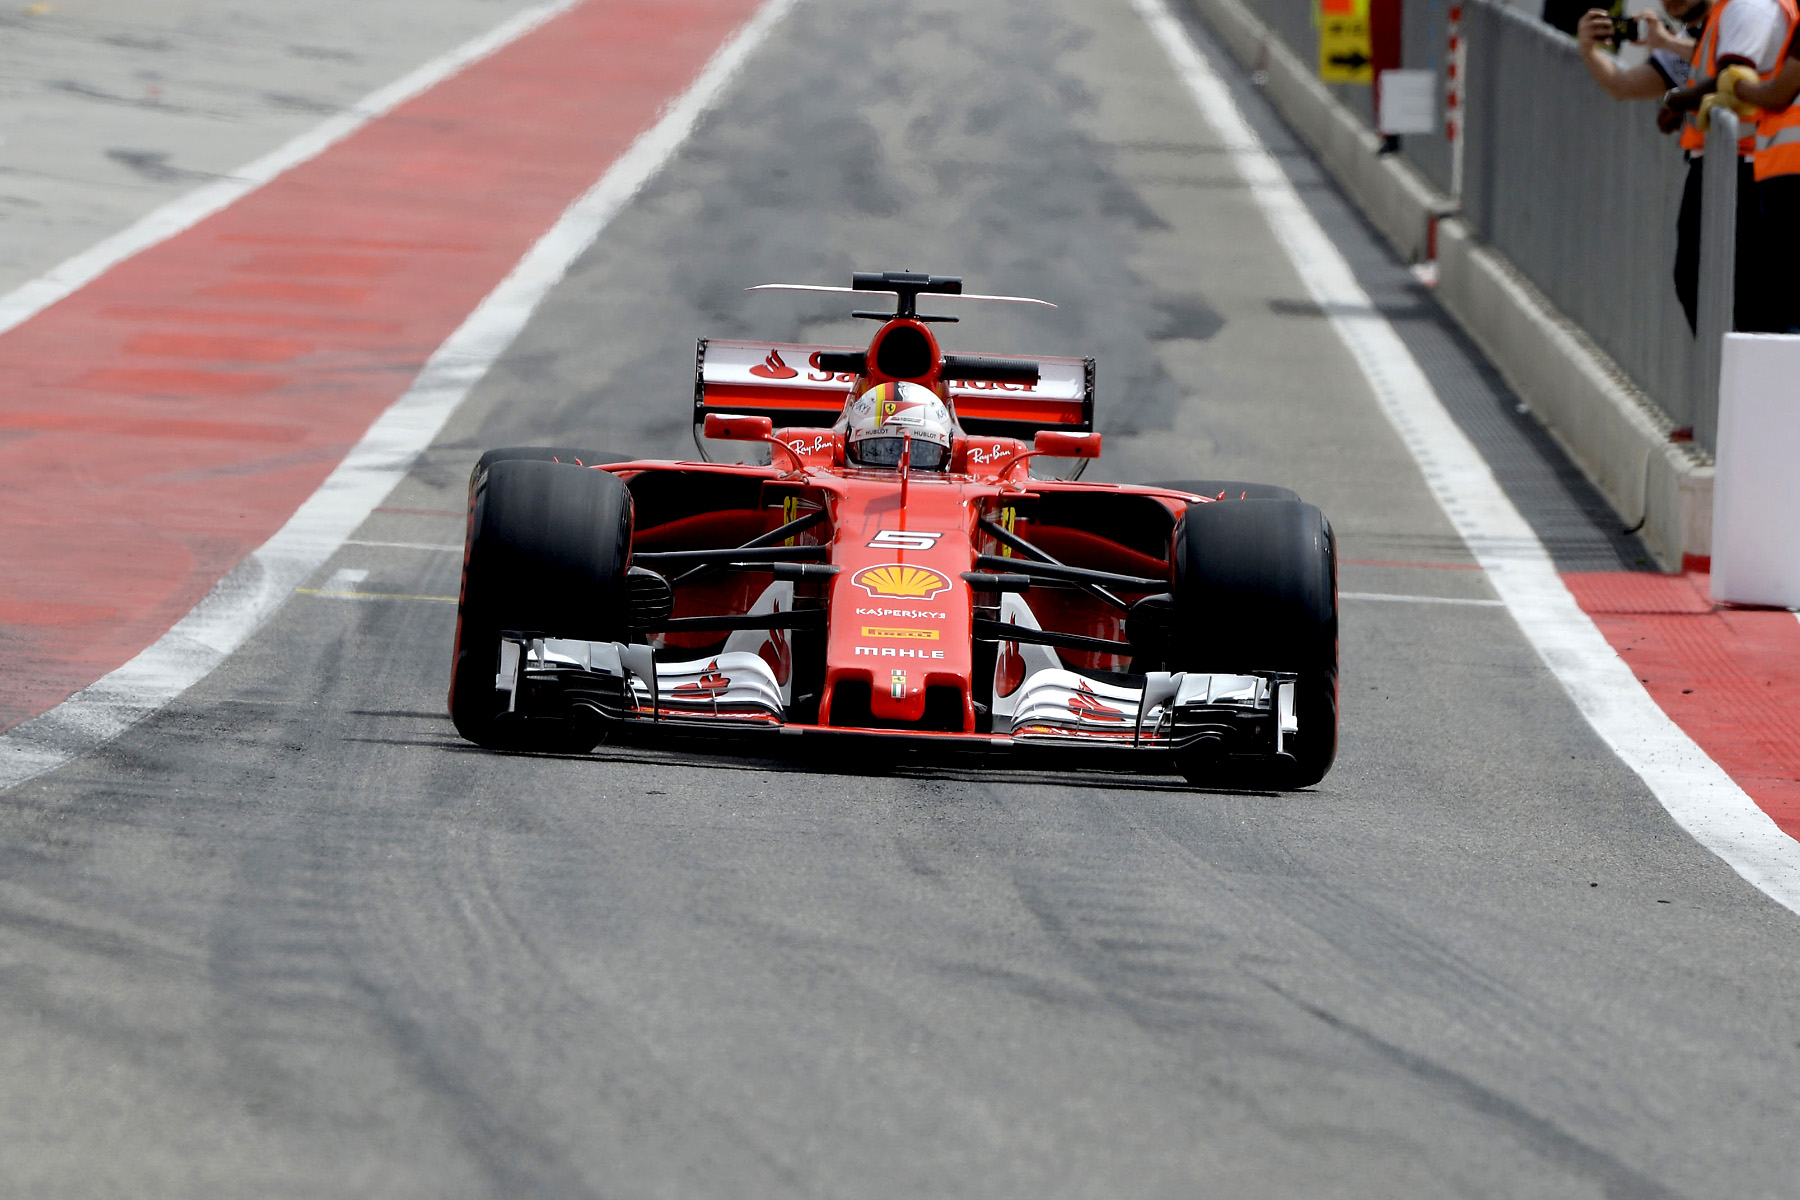 Ferrari's Sebastian Vettel drives down the pit lane during the Bahrain in-season test